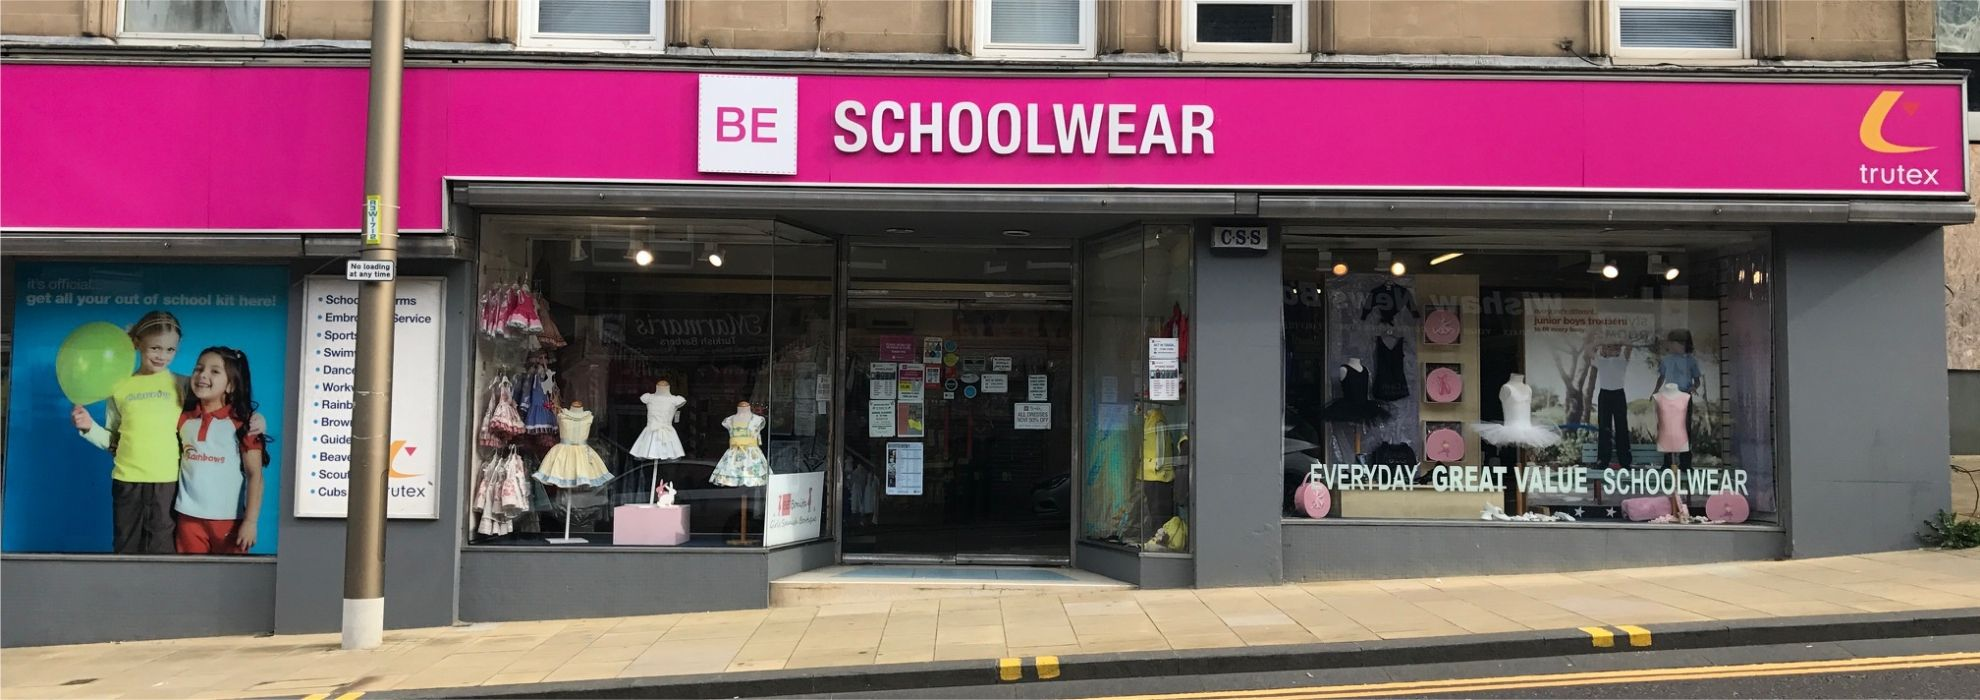 BE Schoolwear Wishaw